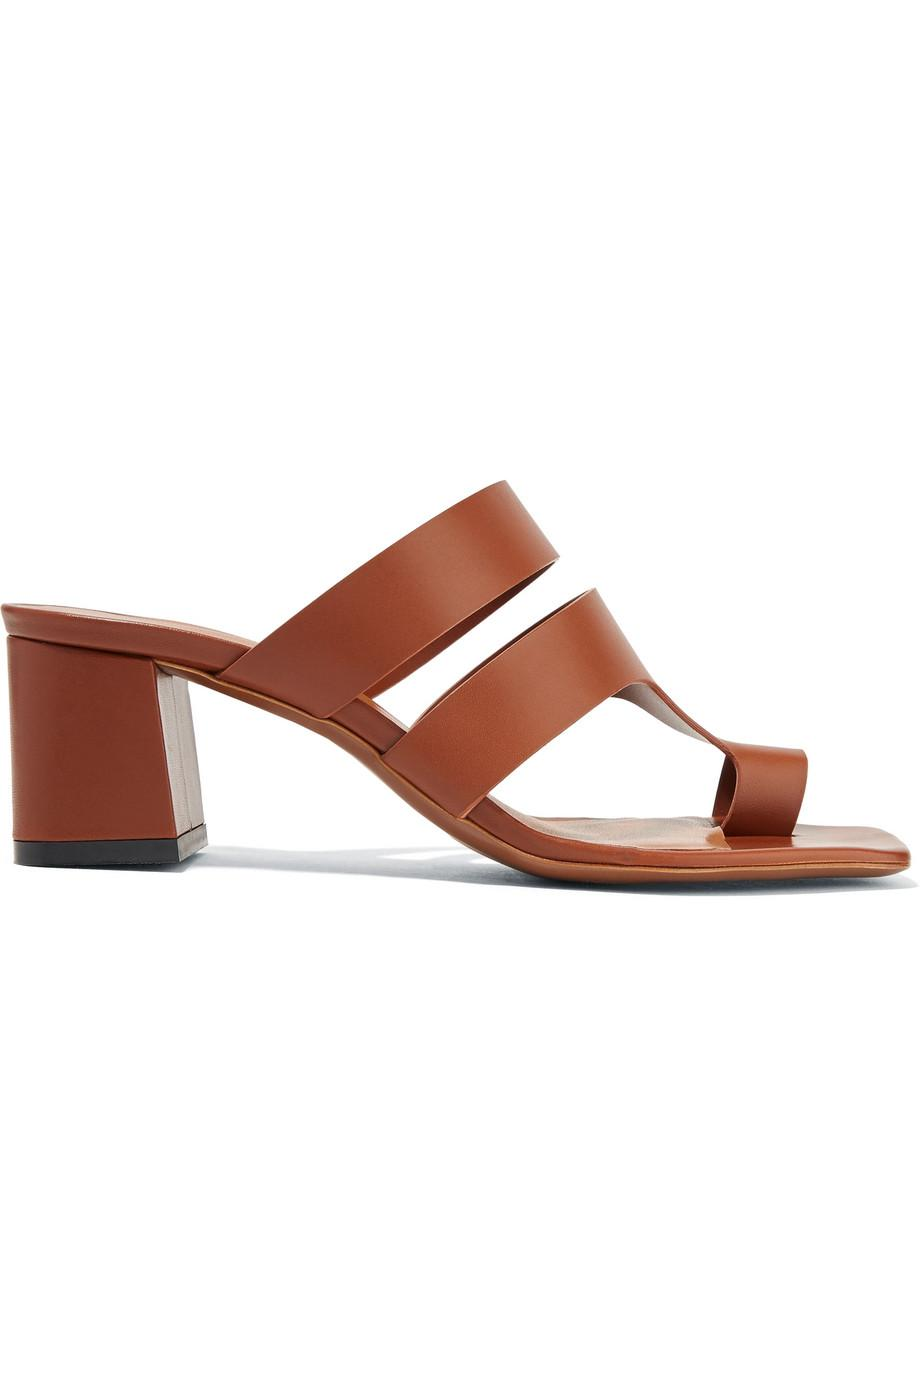 Neous Anthos Cutout Leather Mules 2018 New Online dsgpNU4